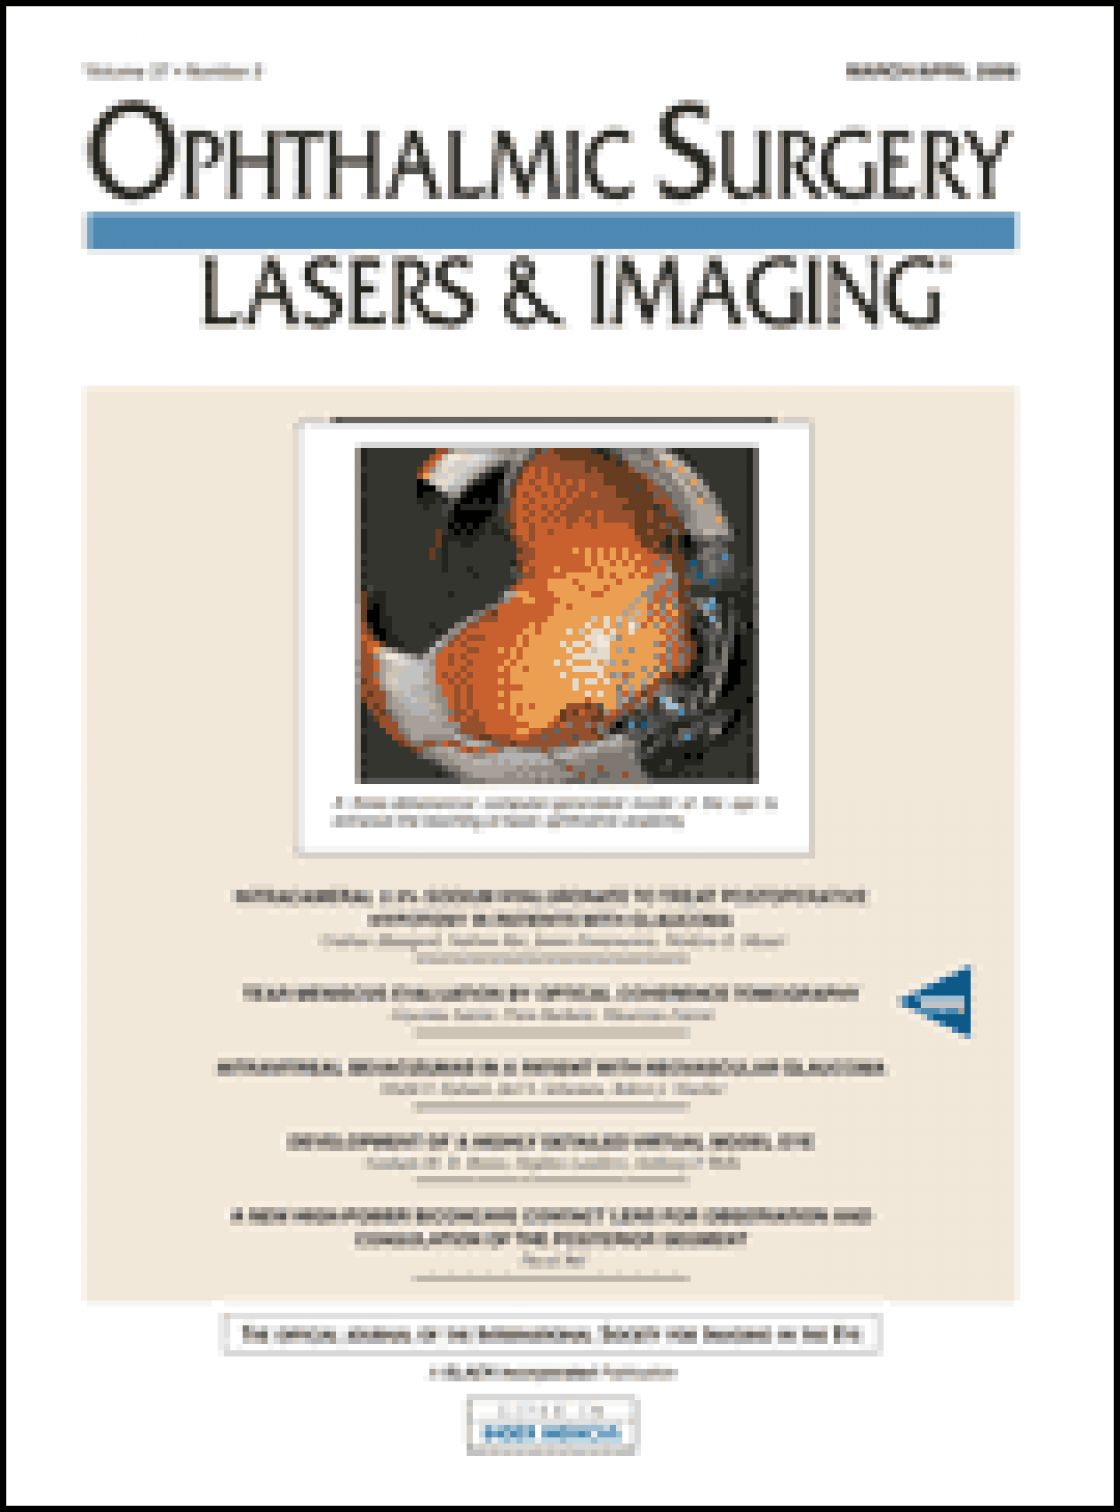 Tear meniscus evaluation by optical coherence tomography